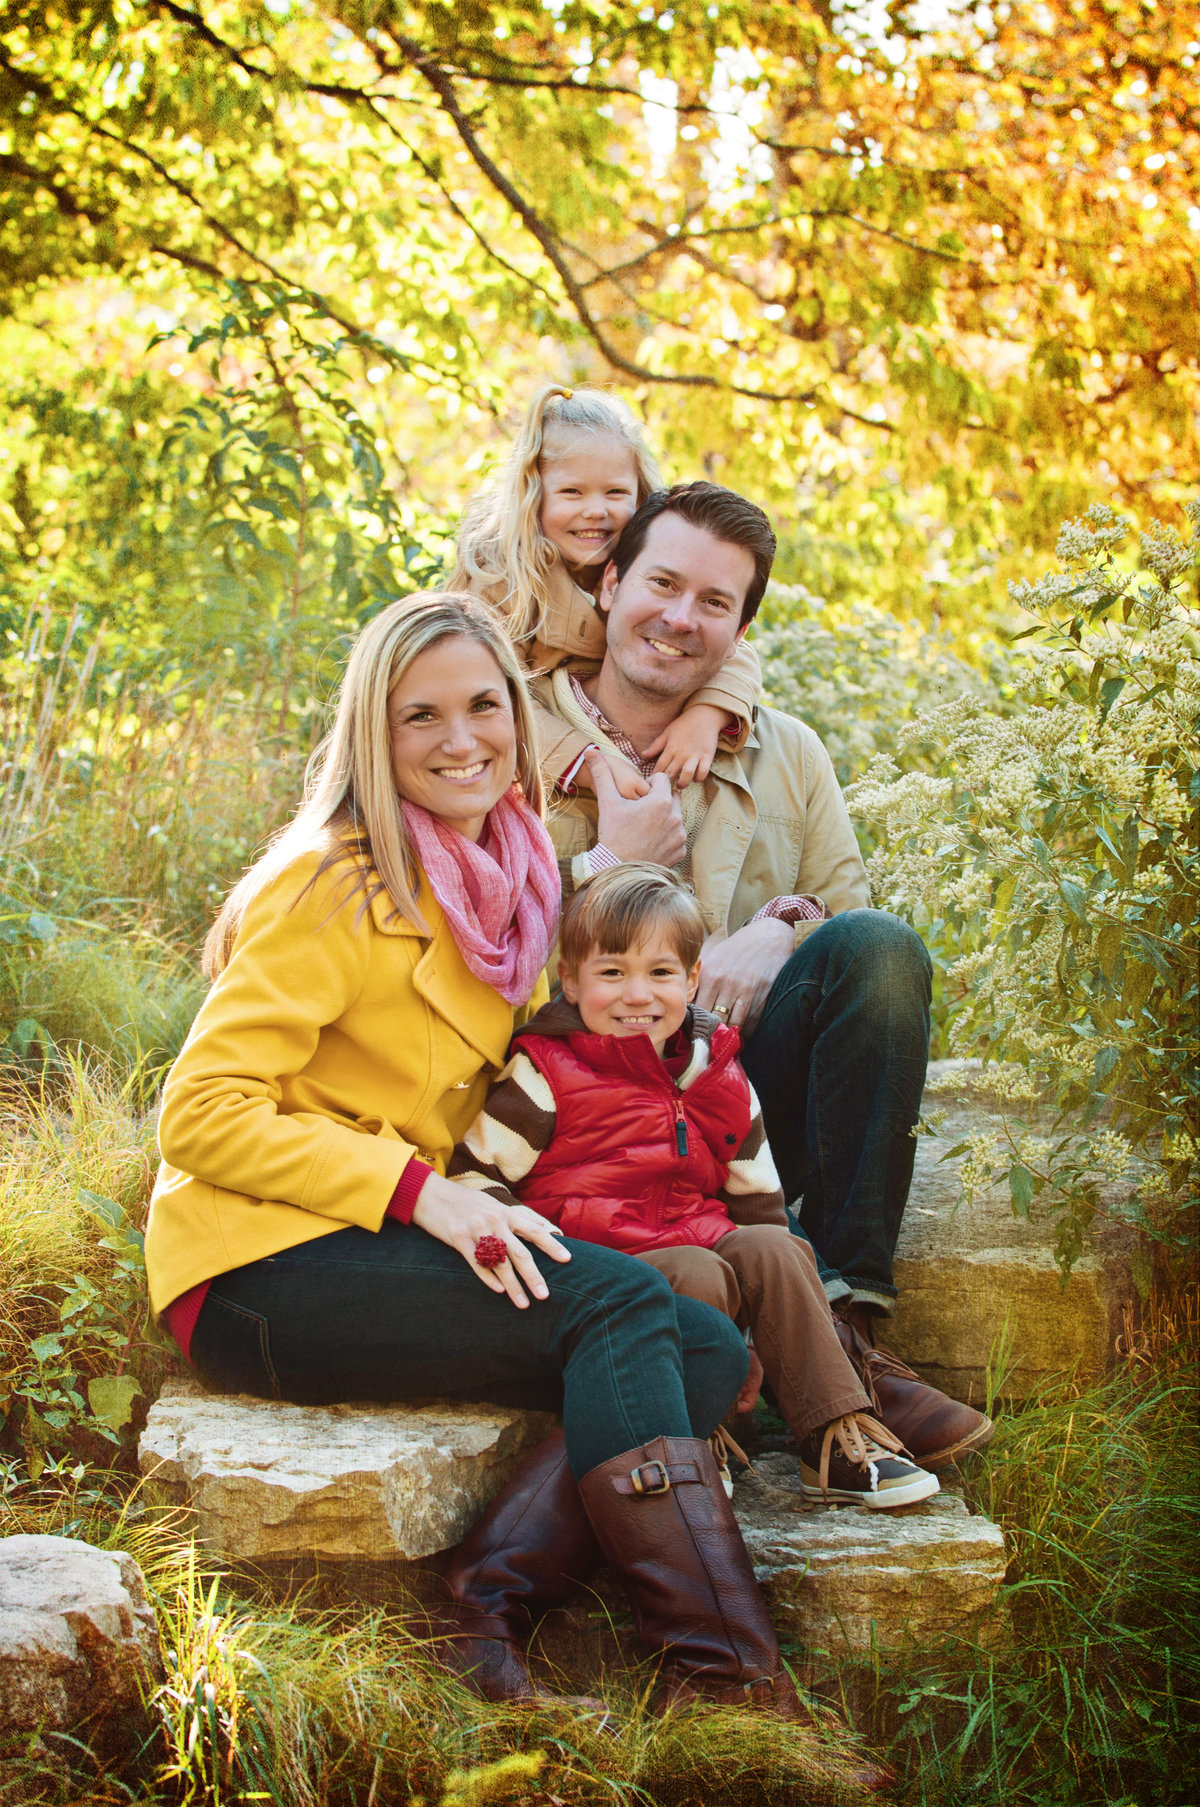 Located near Annapolis, we are one of the area's  premiere family photographers